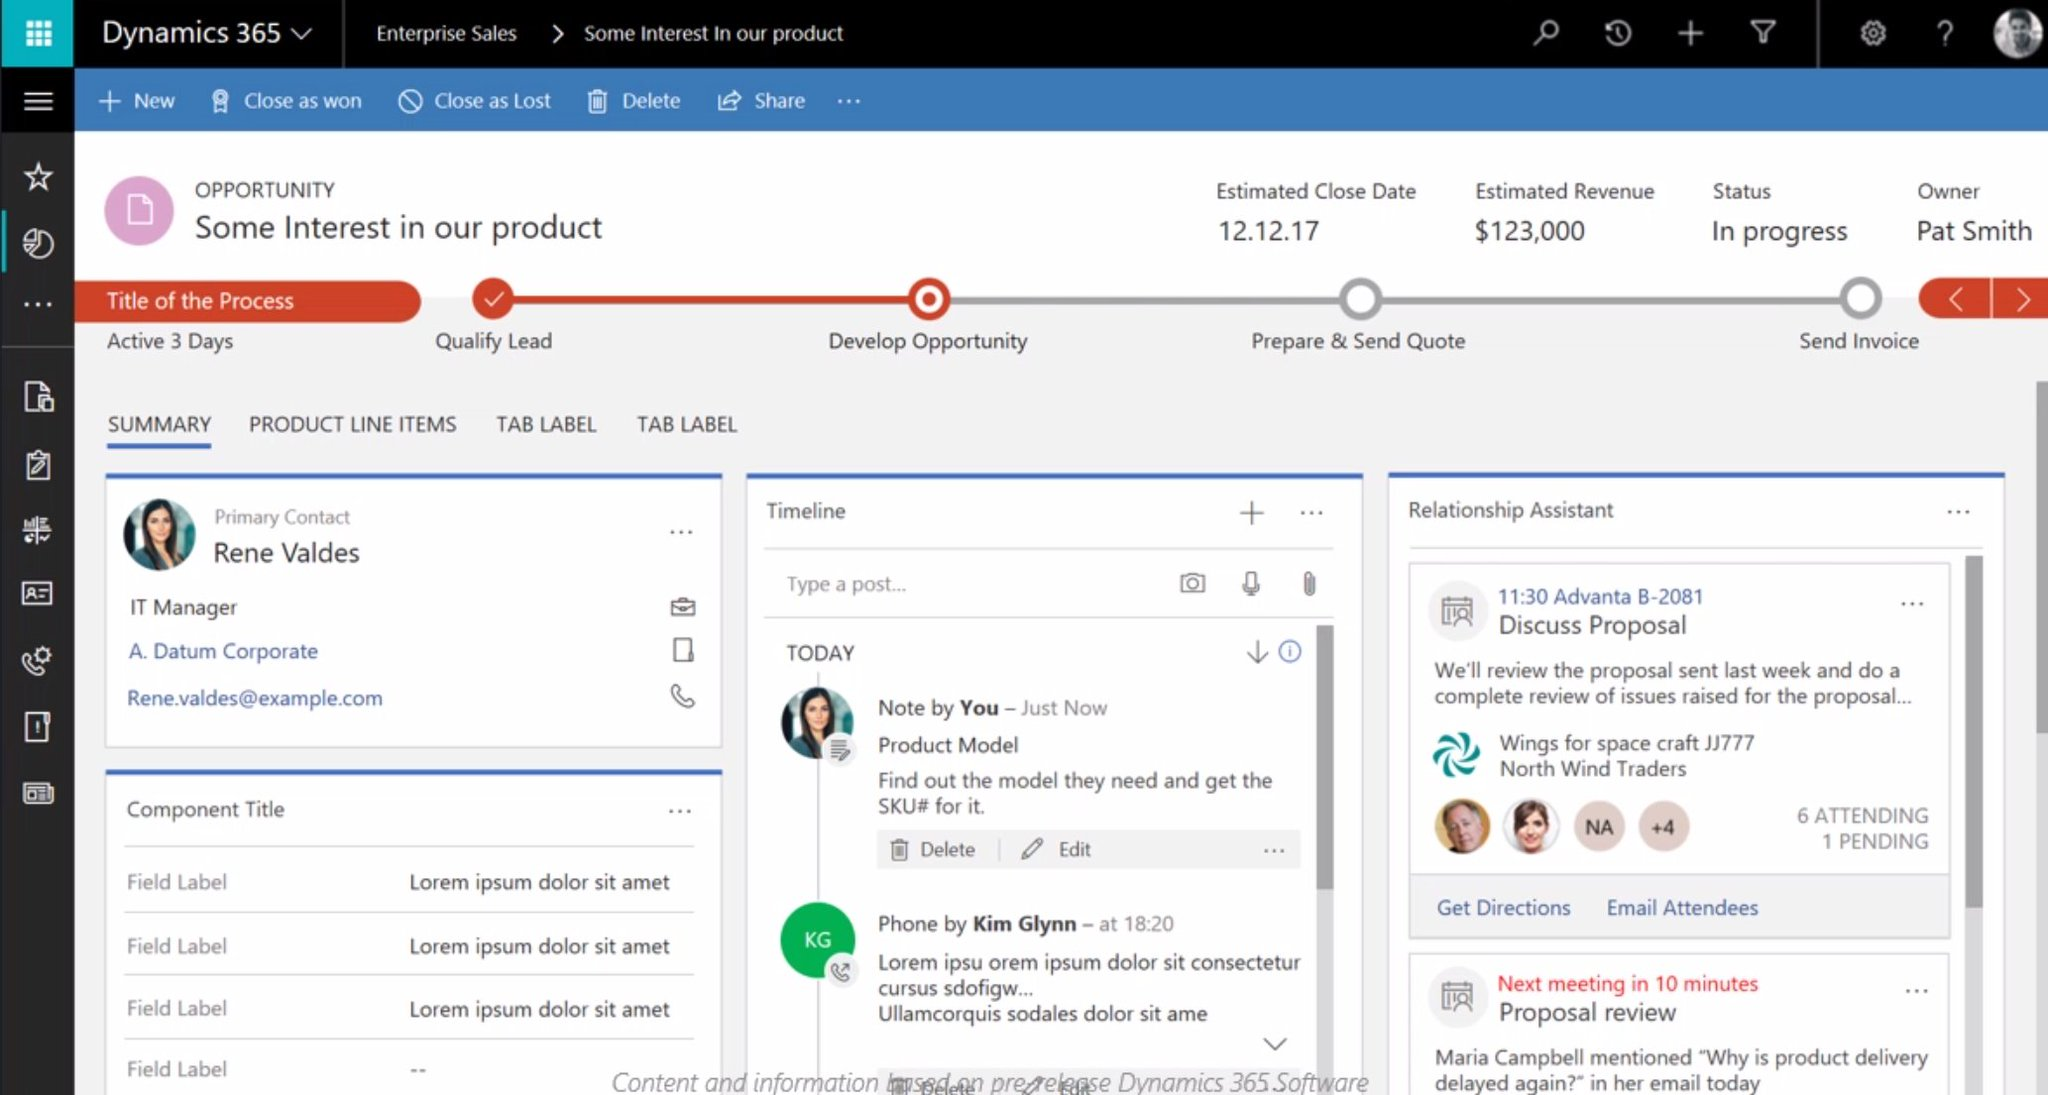 Unified Interface coming to #MSDyn365 looks pretty sweet - or what do you think? Next gen #CRM UI. https://t.co/zYimXXJ7kg